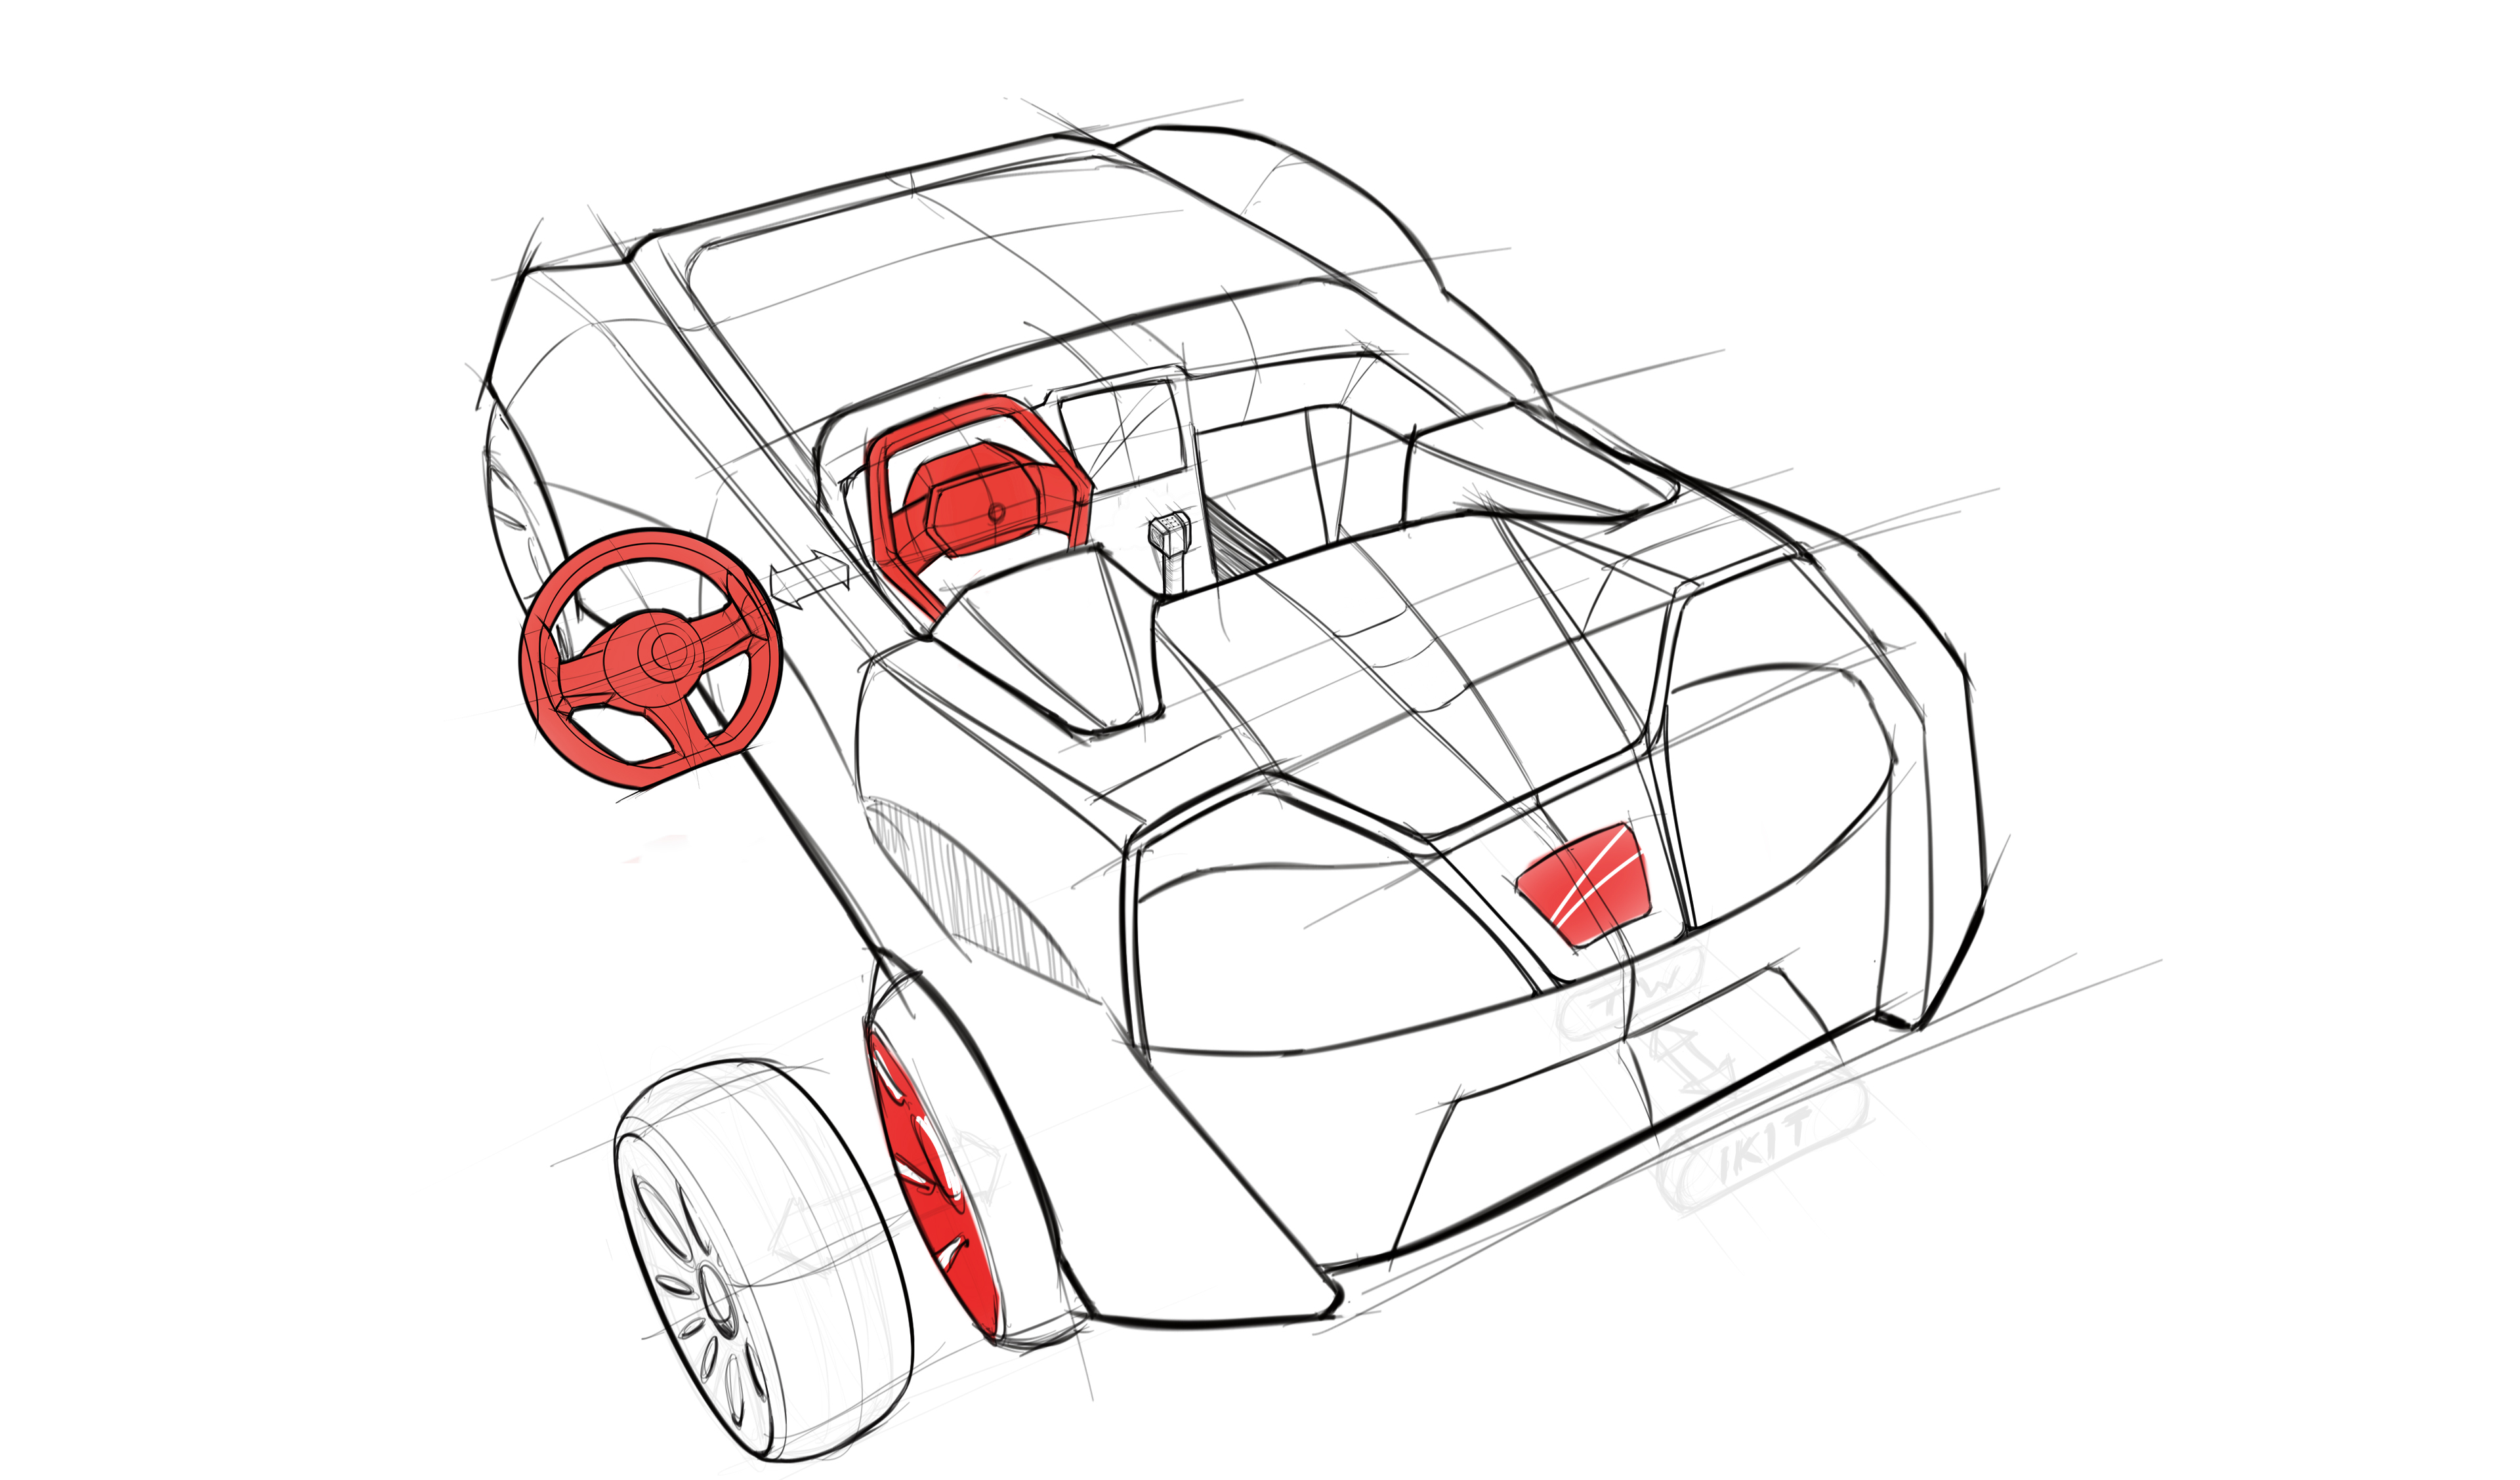 3d car drawing at getdrawings free for personal use 3d car